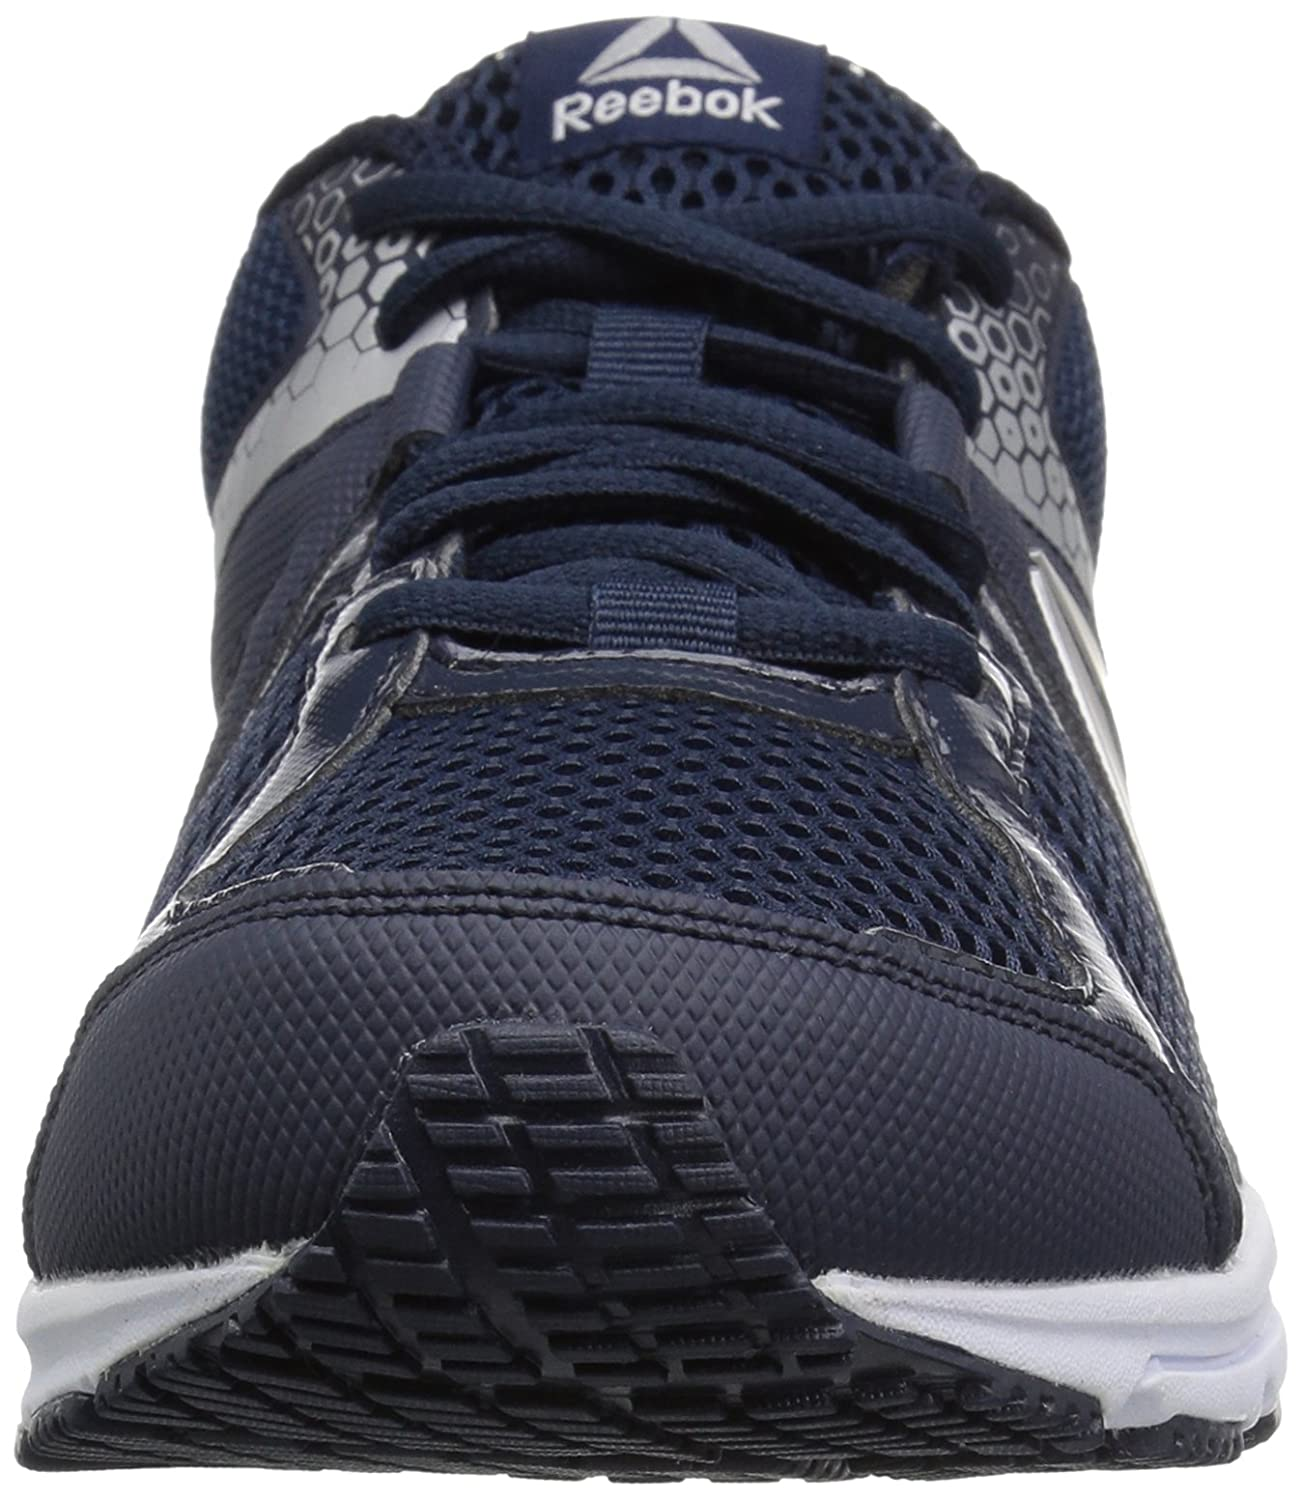 ca74415975a Reebok Mens Runner 2.0 Mt Blue Size  6.5 D(M) US  Amazon.co.uk  Shoes   Bags